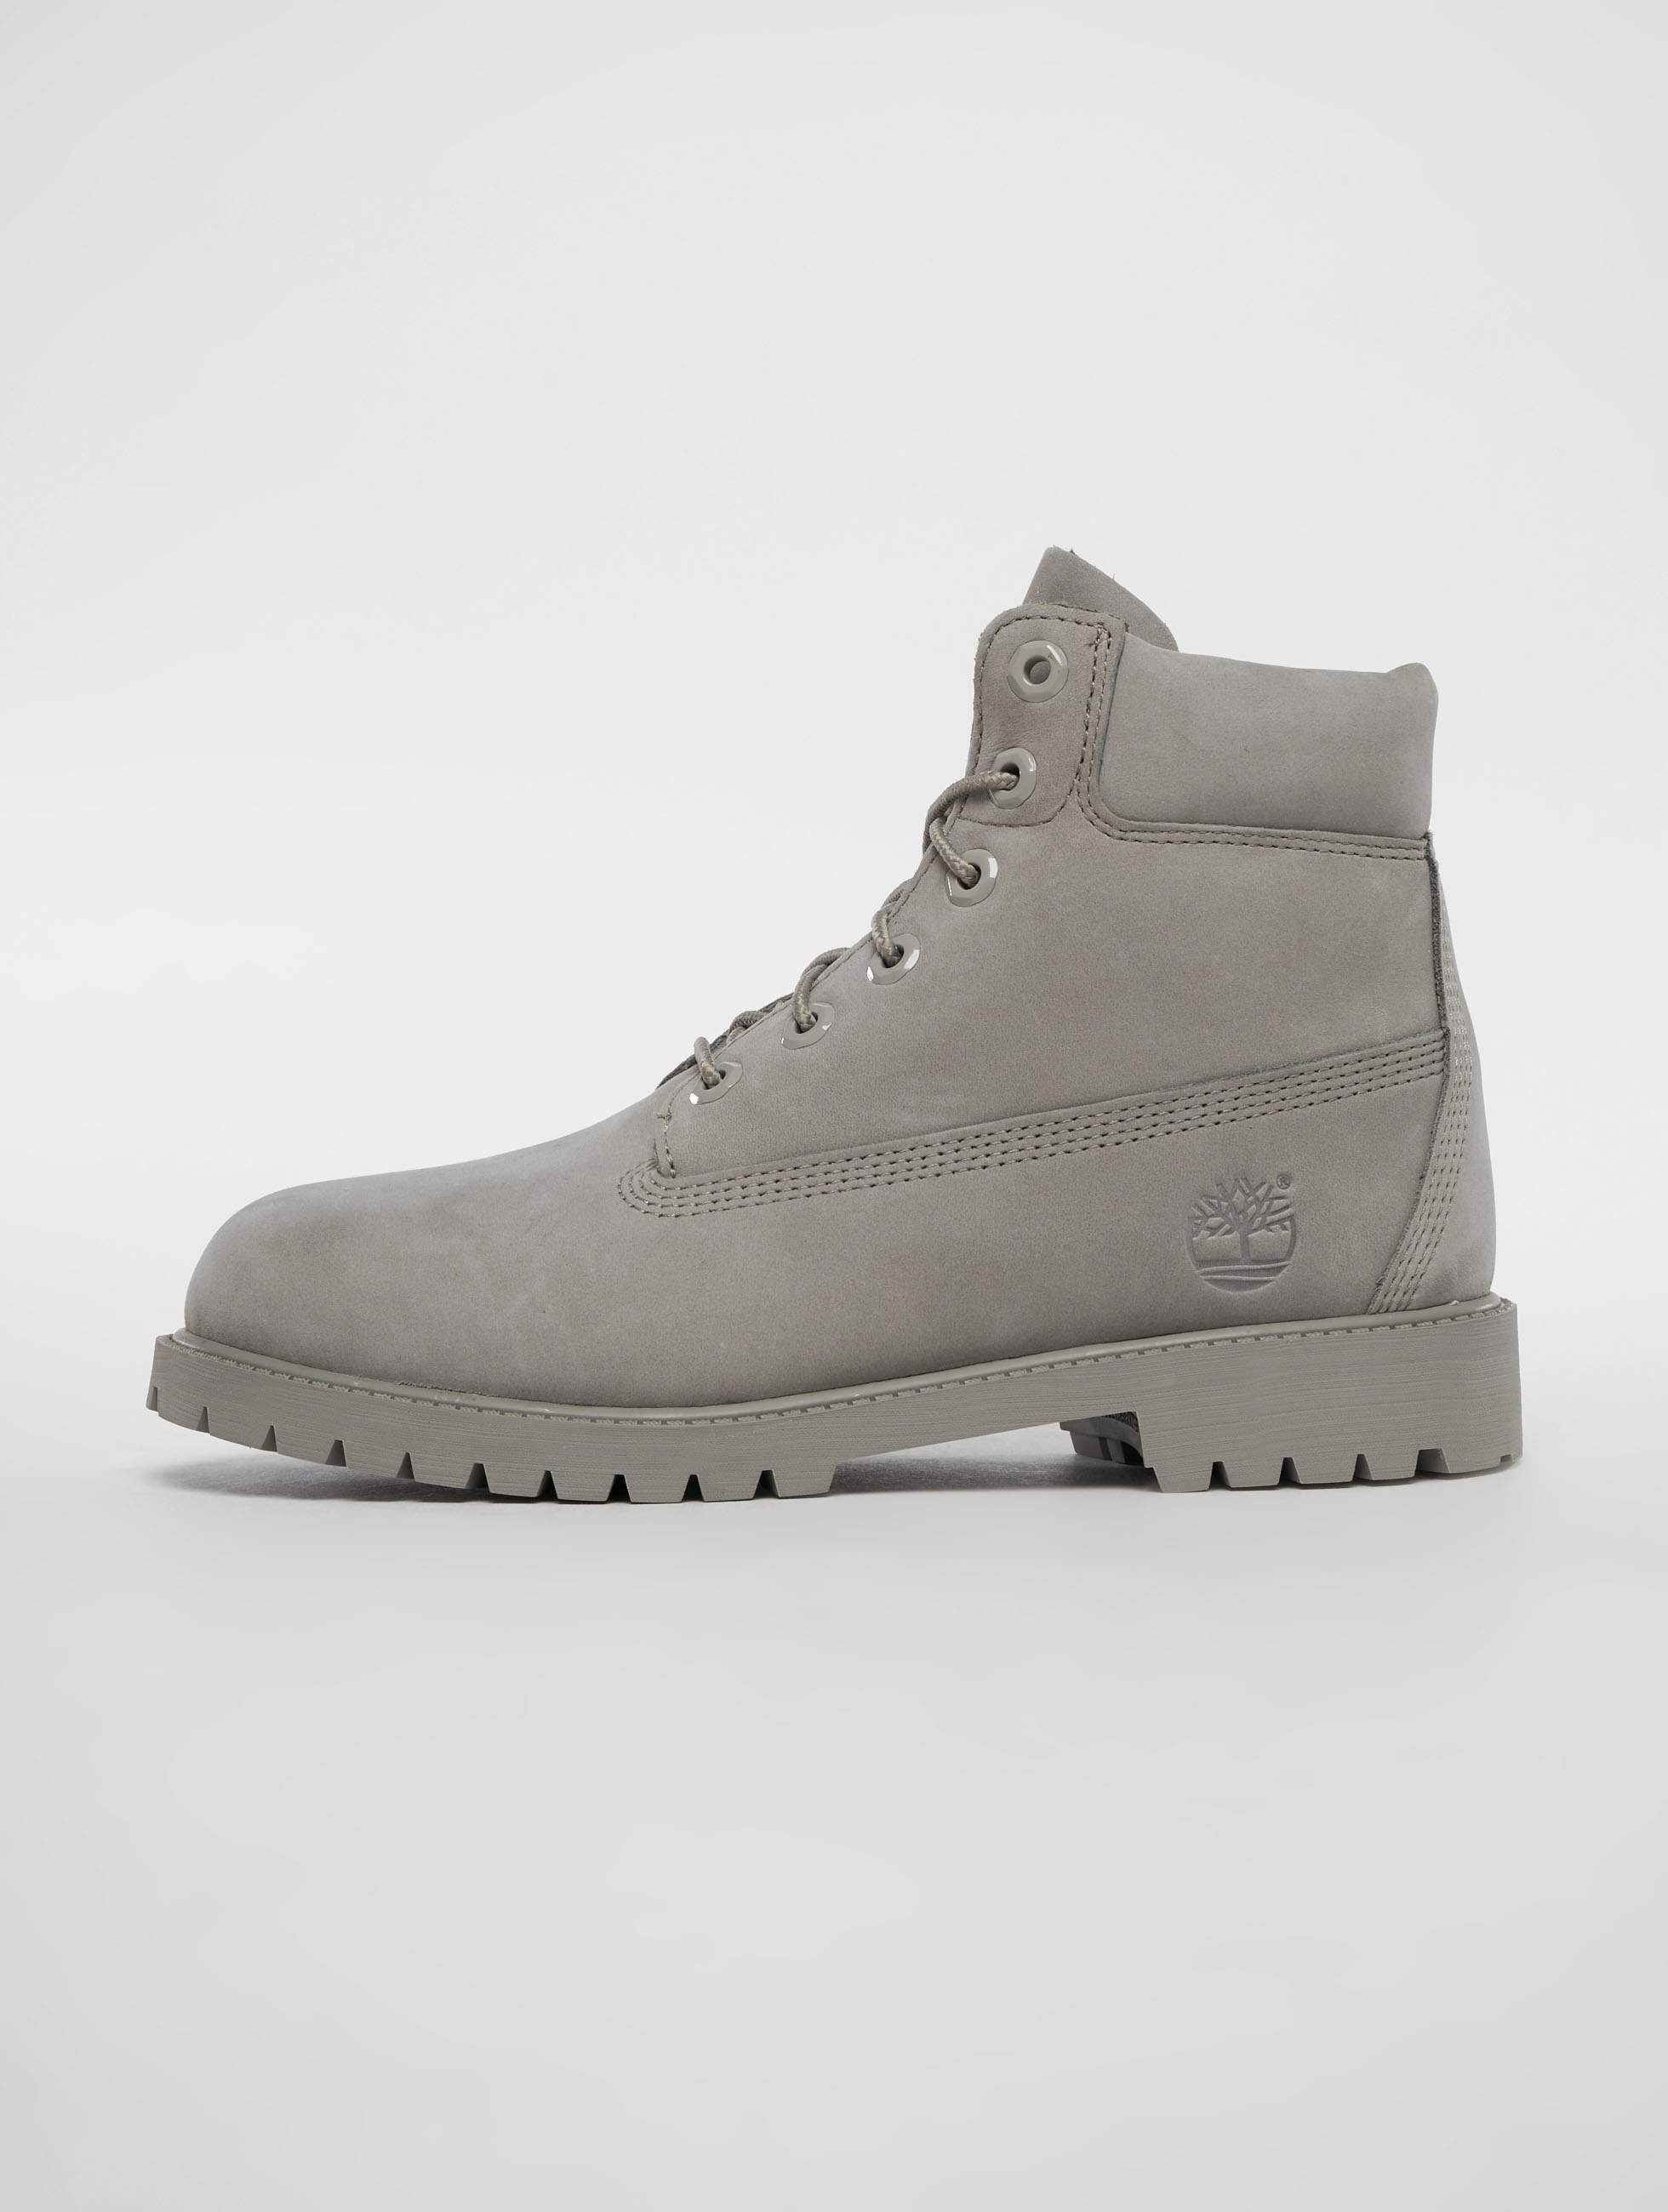 Timberland 6 In Premium Wp Boots Grey